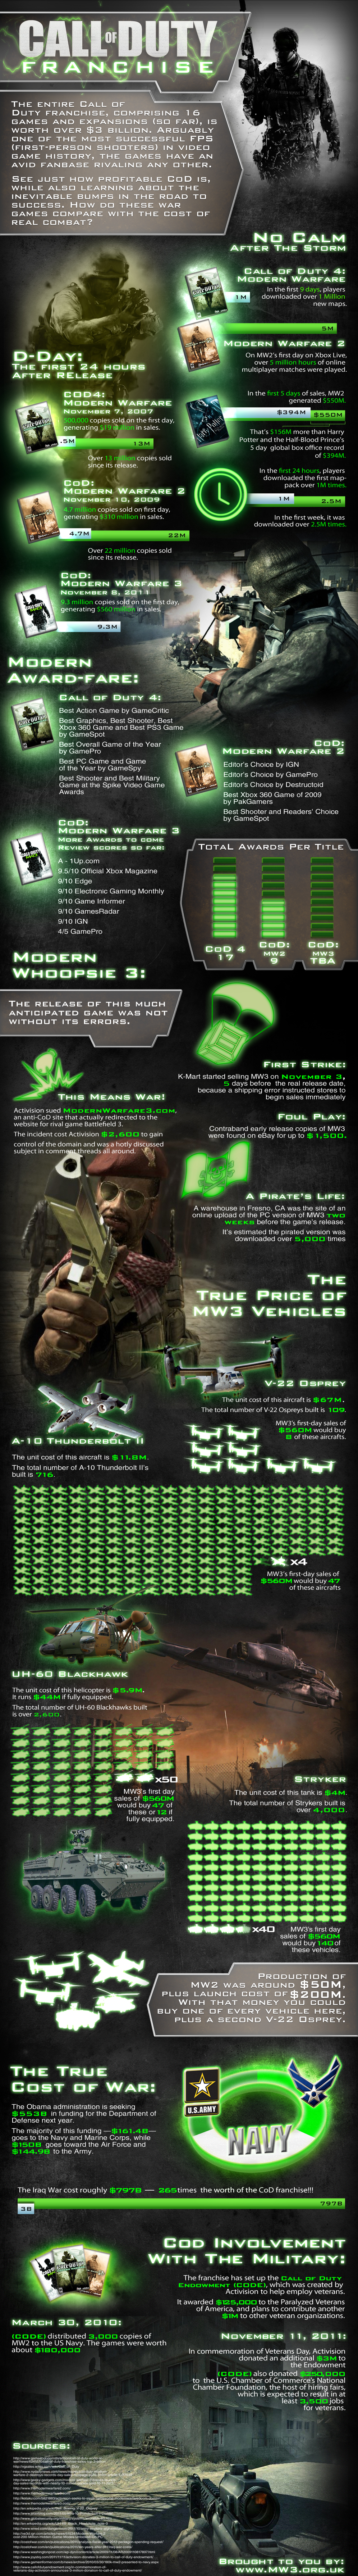 Shocking Modern Warfare 3 Infographic